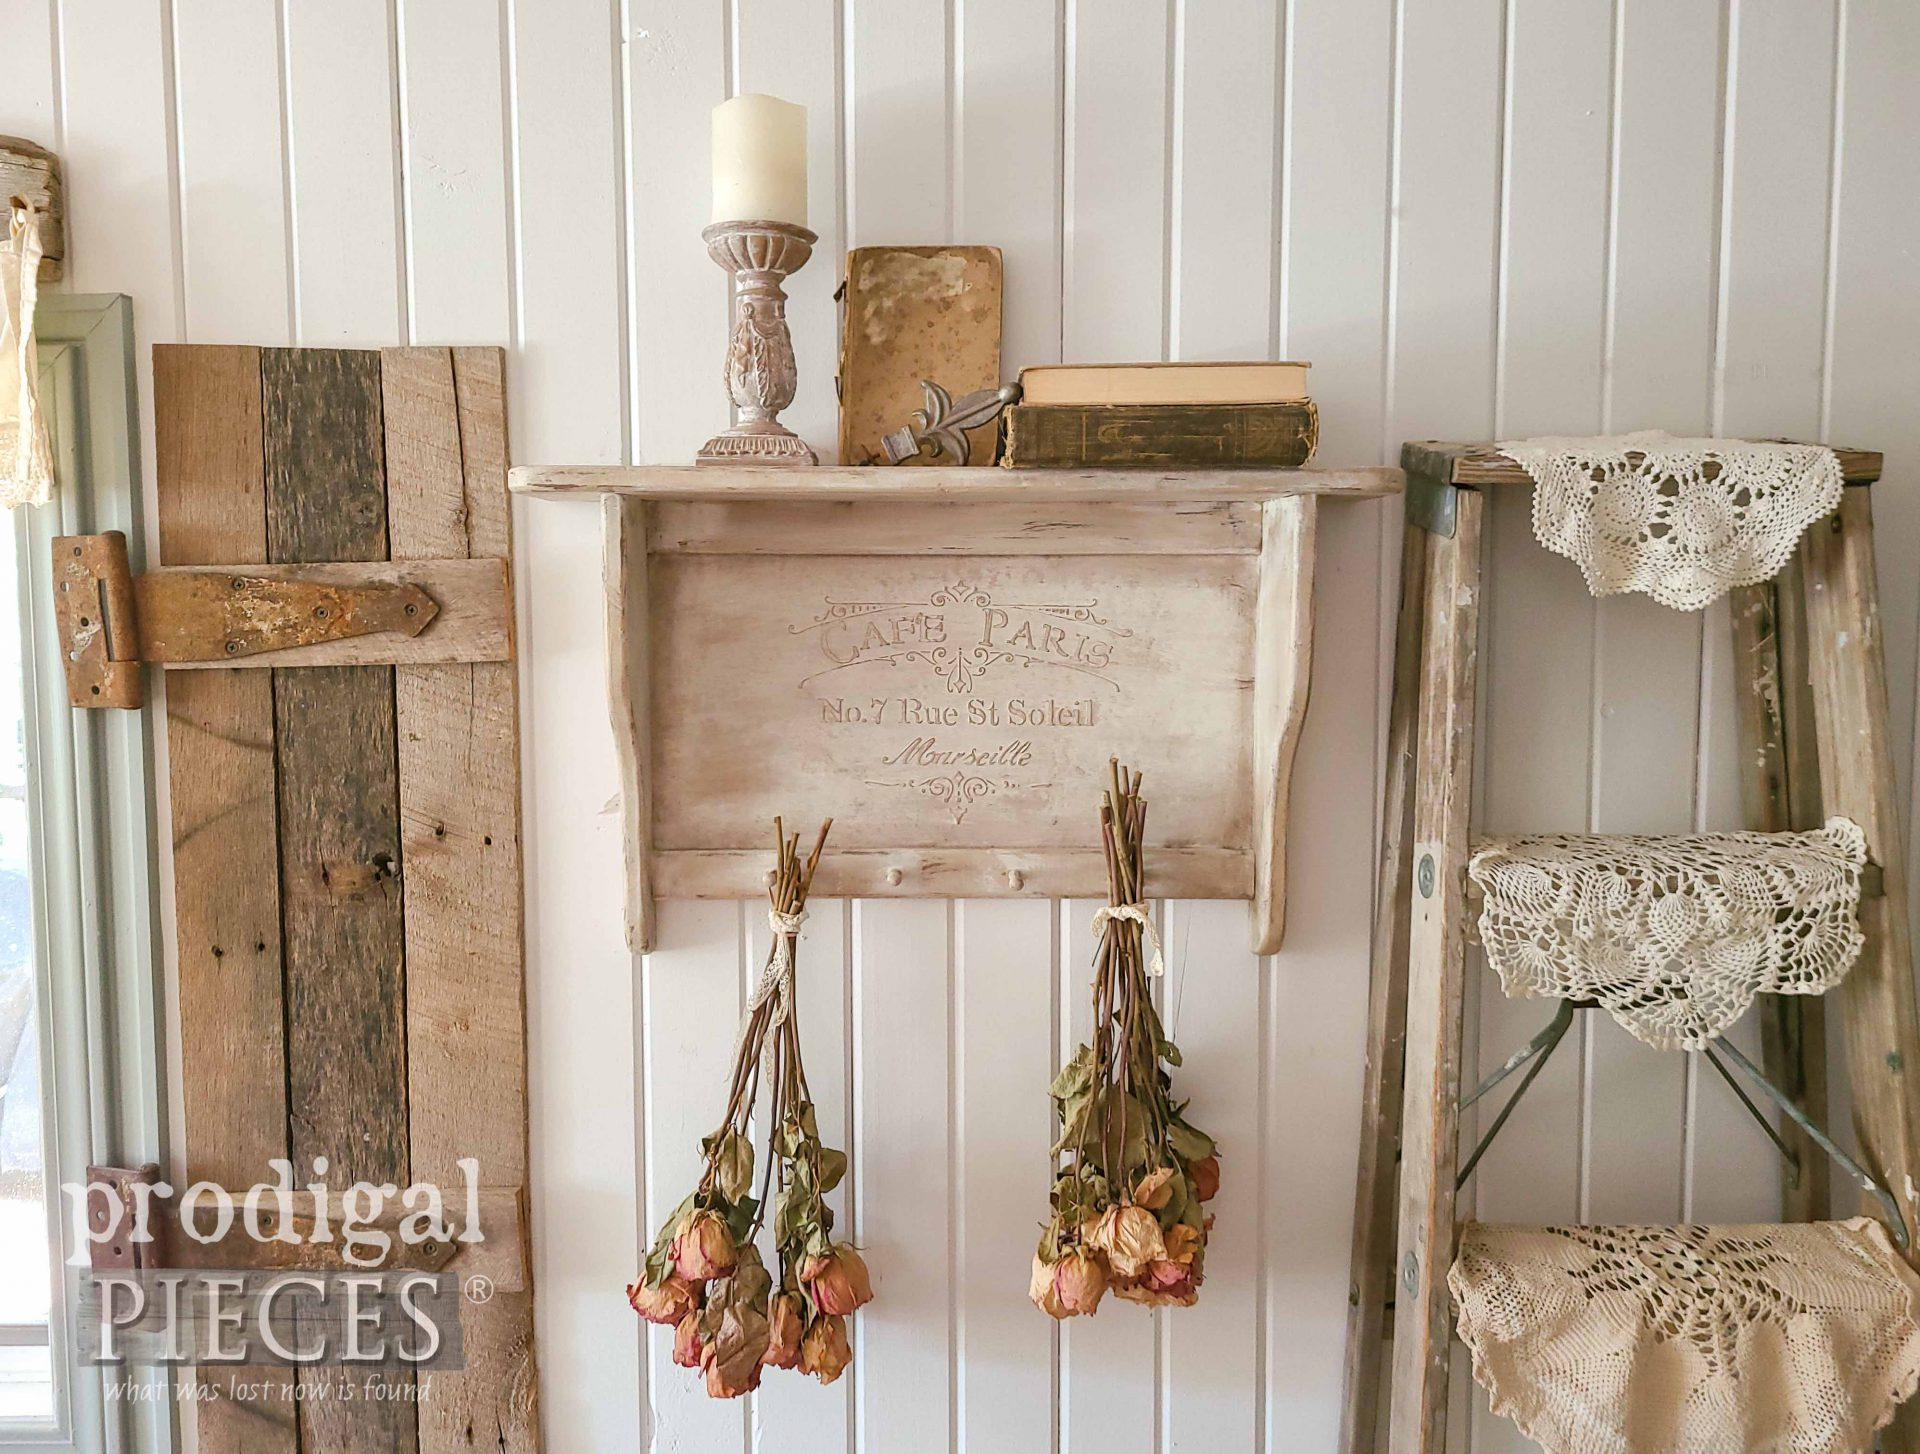 DIY Embossing Video Tutorial with Vintage Shelf Update by Larissa of Prodigal Pieces | prodigalpieces.com #prodigalpieces #home #homedecor